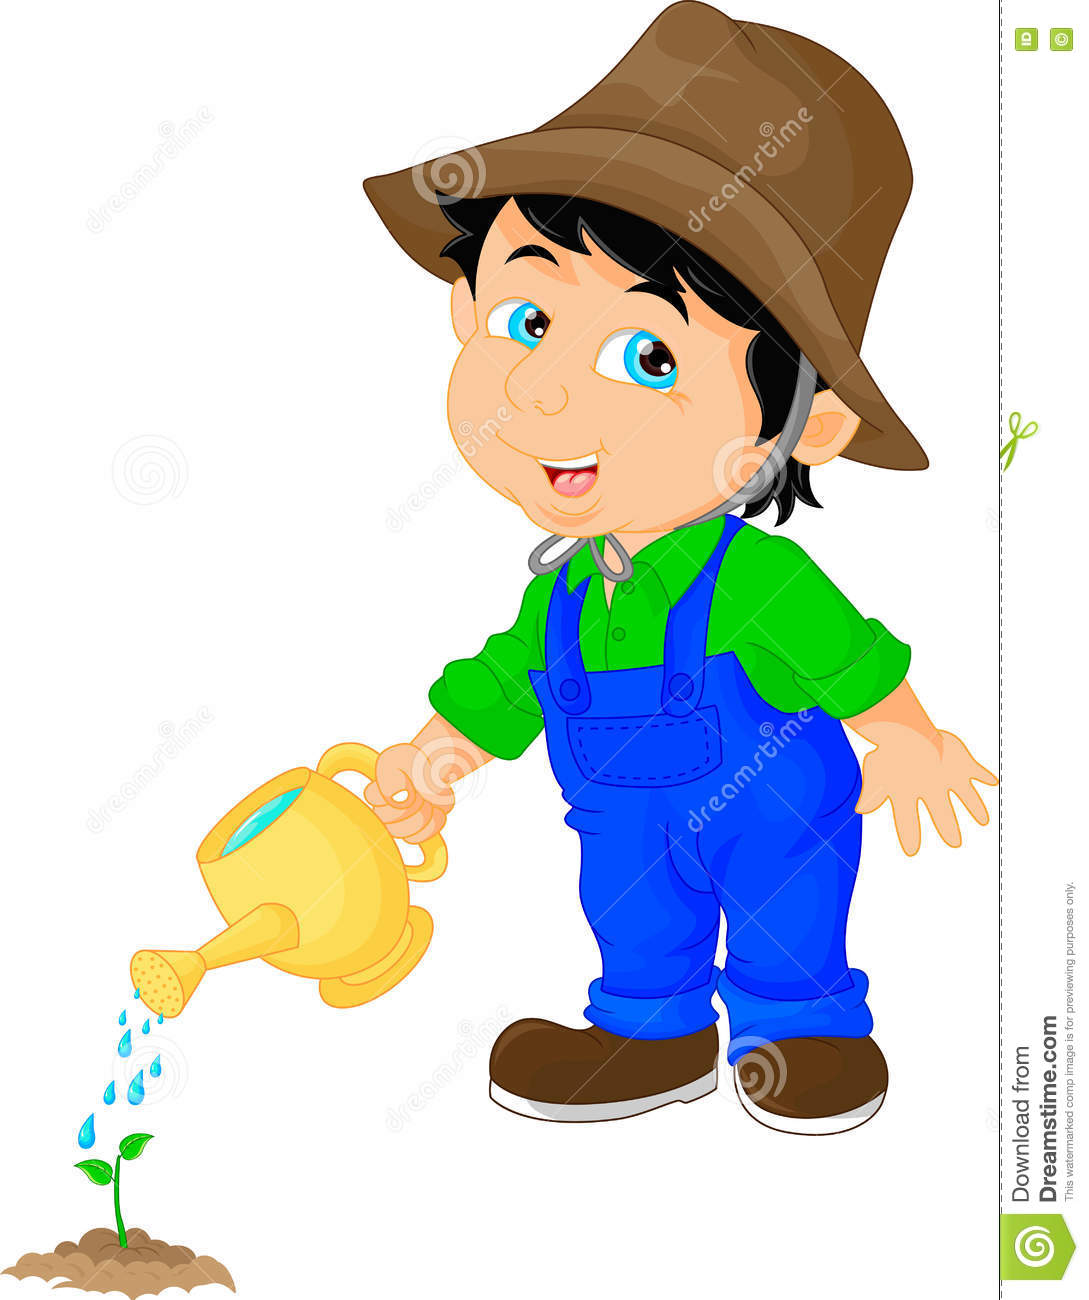 Cute boy watering a plant stock vector. Illustration of ...